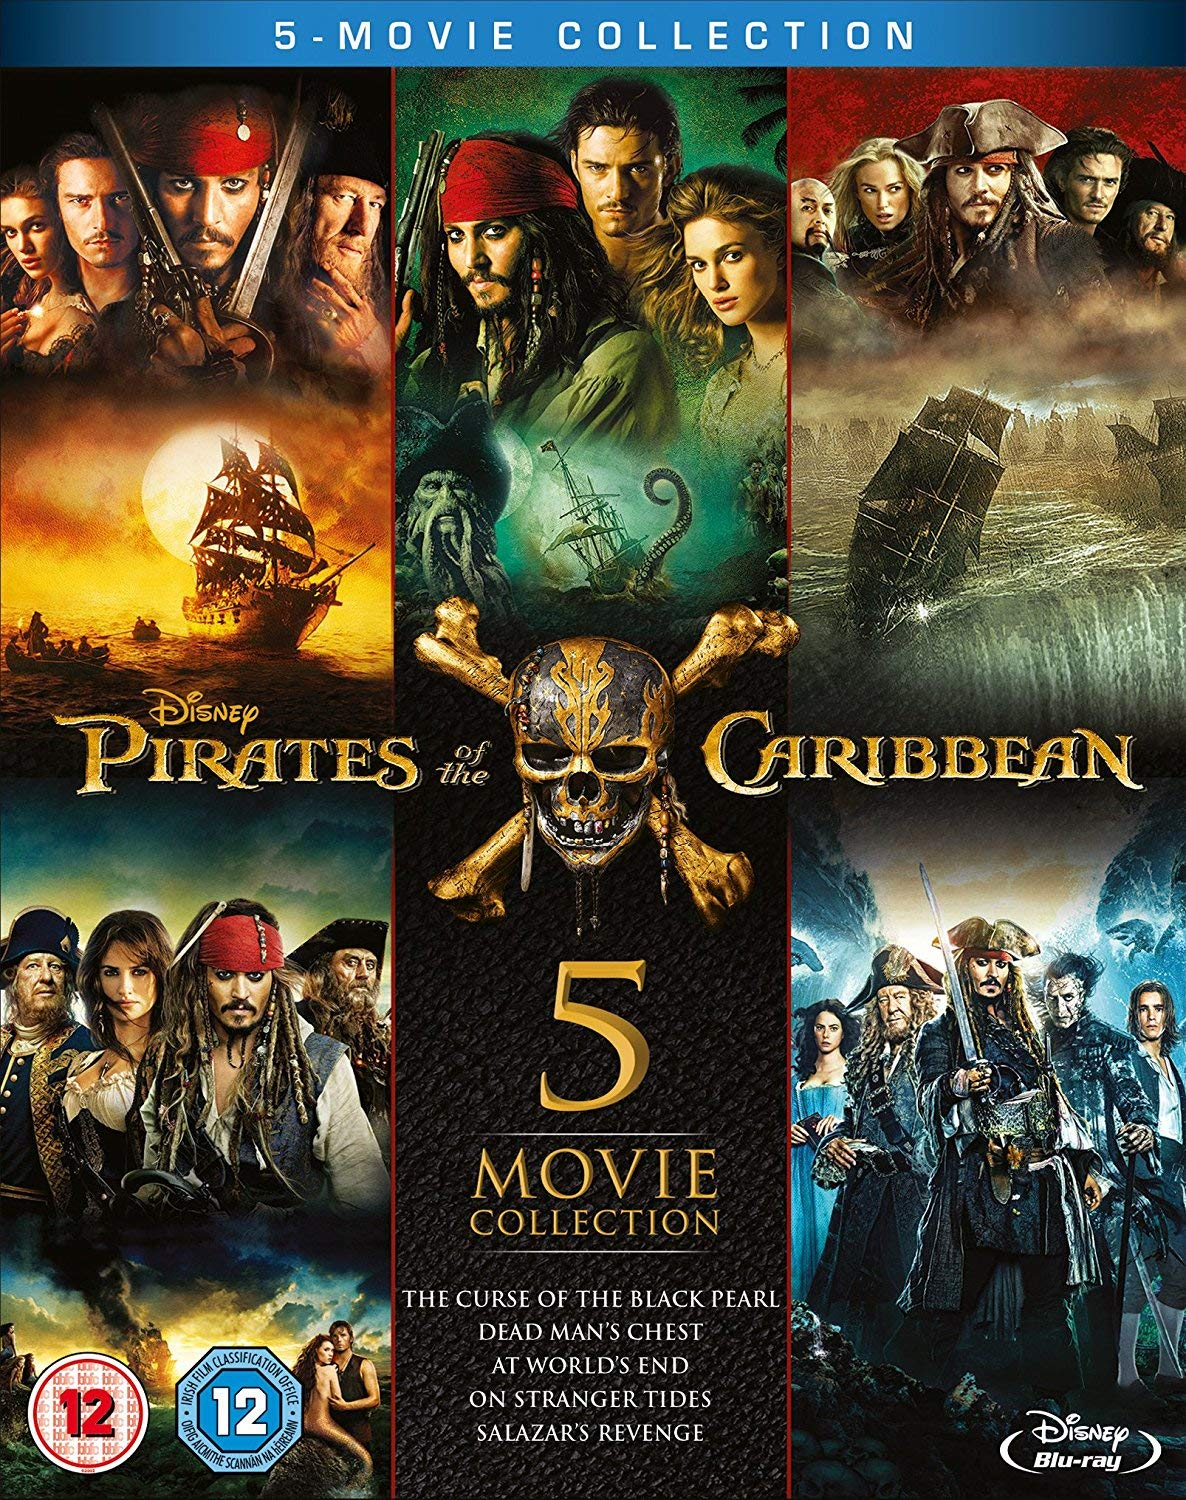 Amazon.com: Pirates of the Caribbean: 5-Movie Complete Collection ...